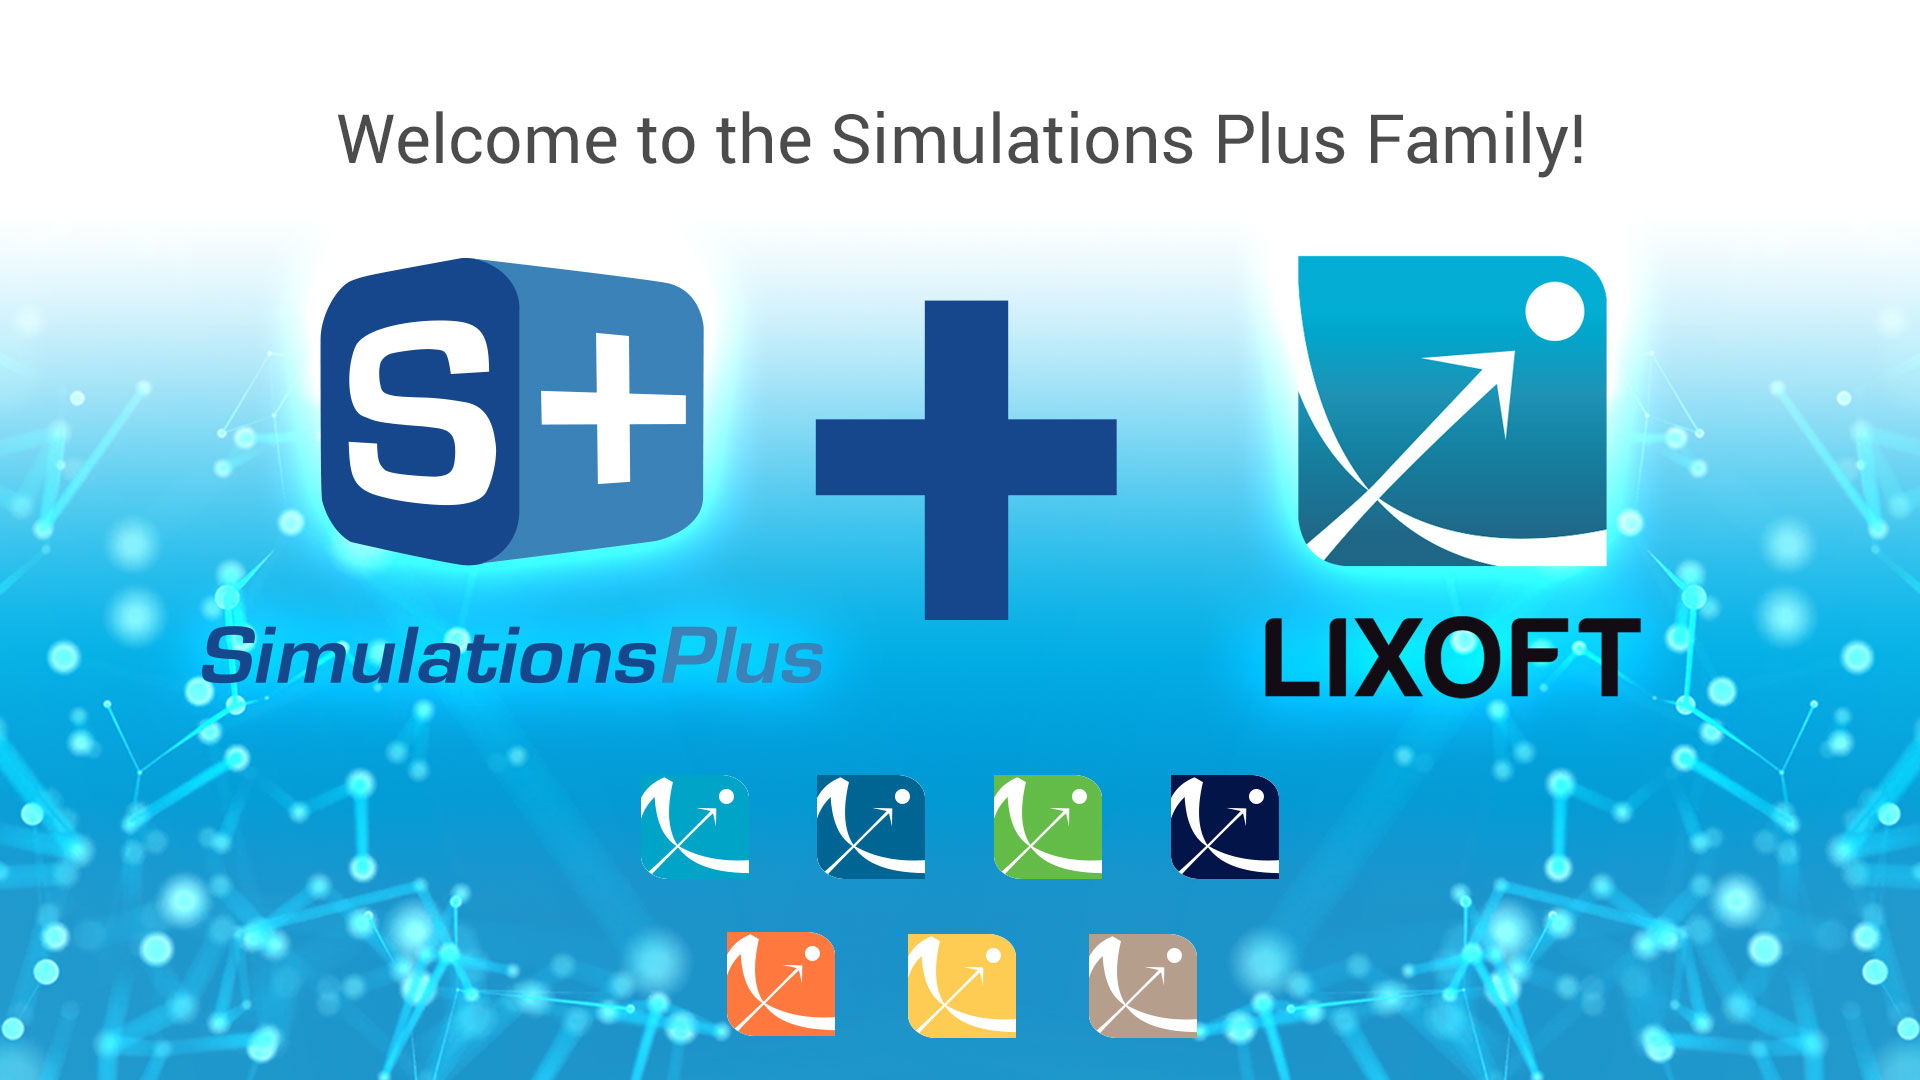 Lixoft joins the Simulations Plus family